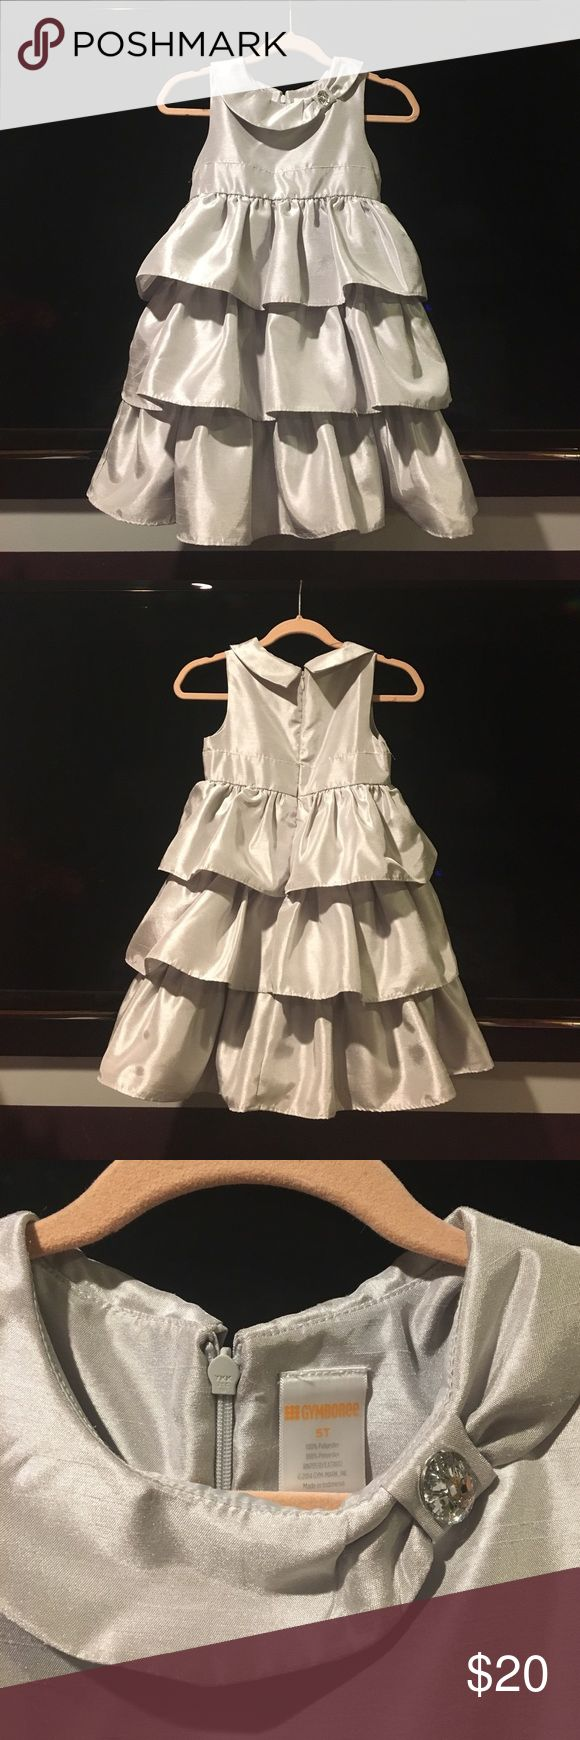 Beautiful Christmas dress in silver ! Beautiful little girls dress . Worn once for Christmas party. Size 5T Gymboree. Silver color. Very comfy! Gymboree Dresses Formal